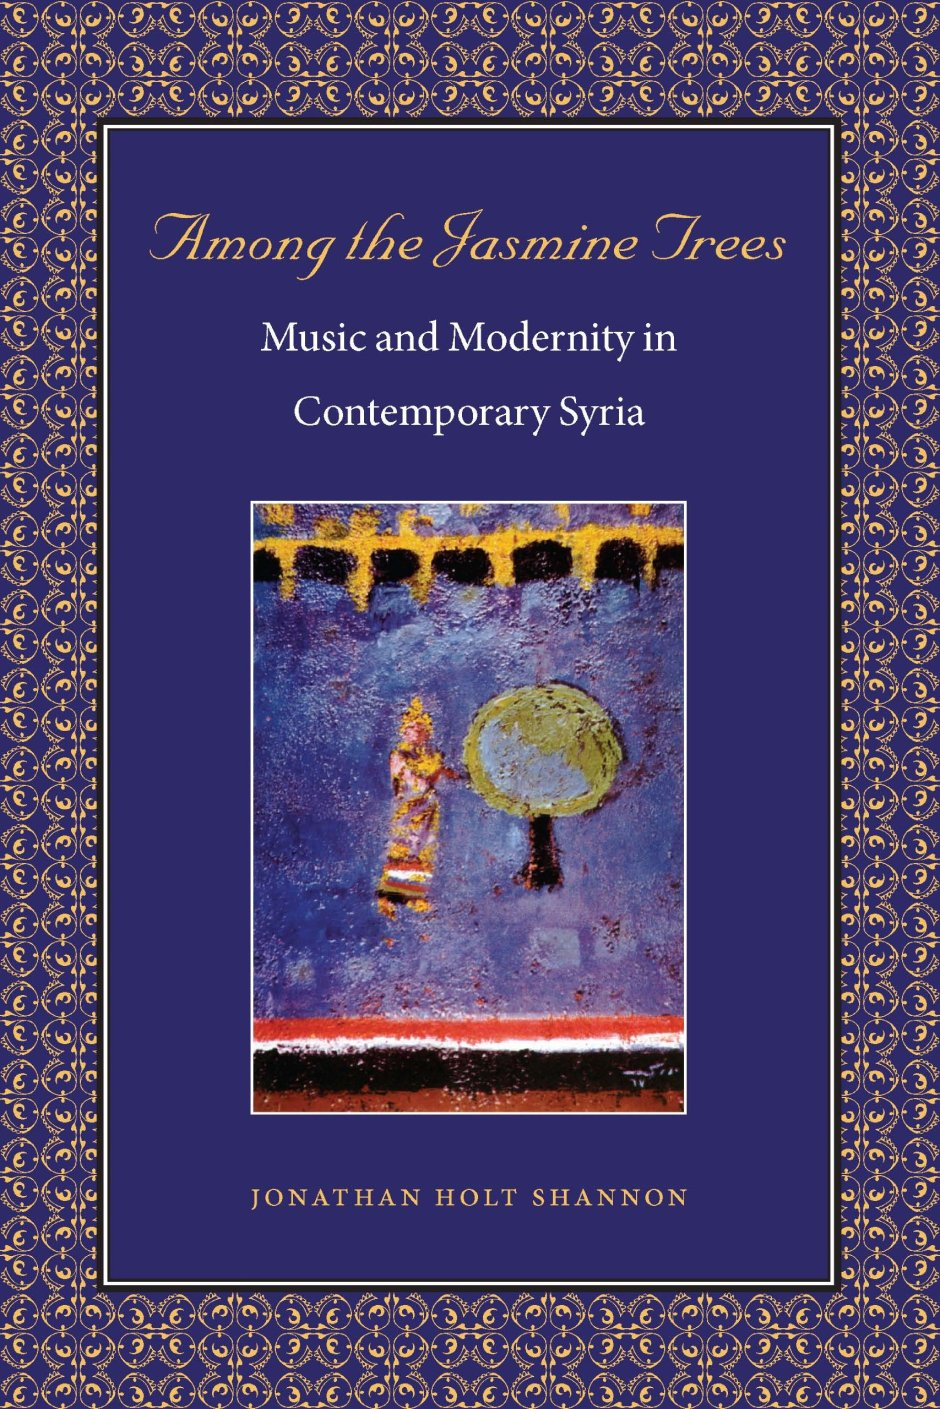 among-the-jasmine-trees-music-and-modernity-in-contemporary-syria-music-culture